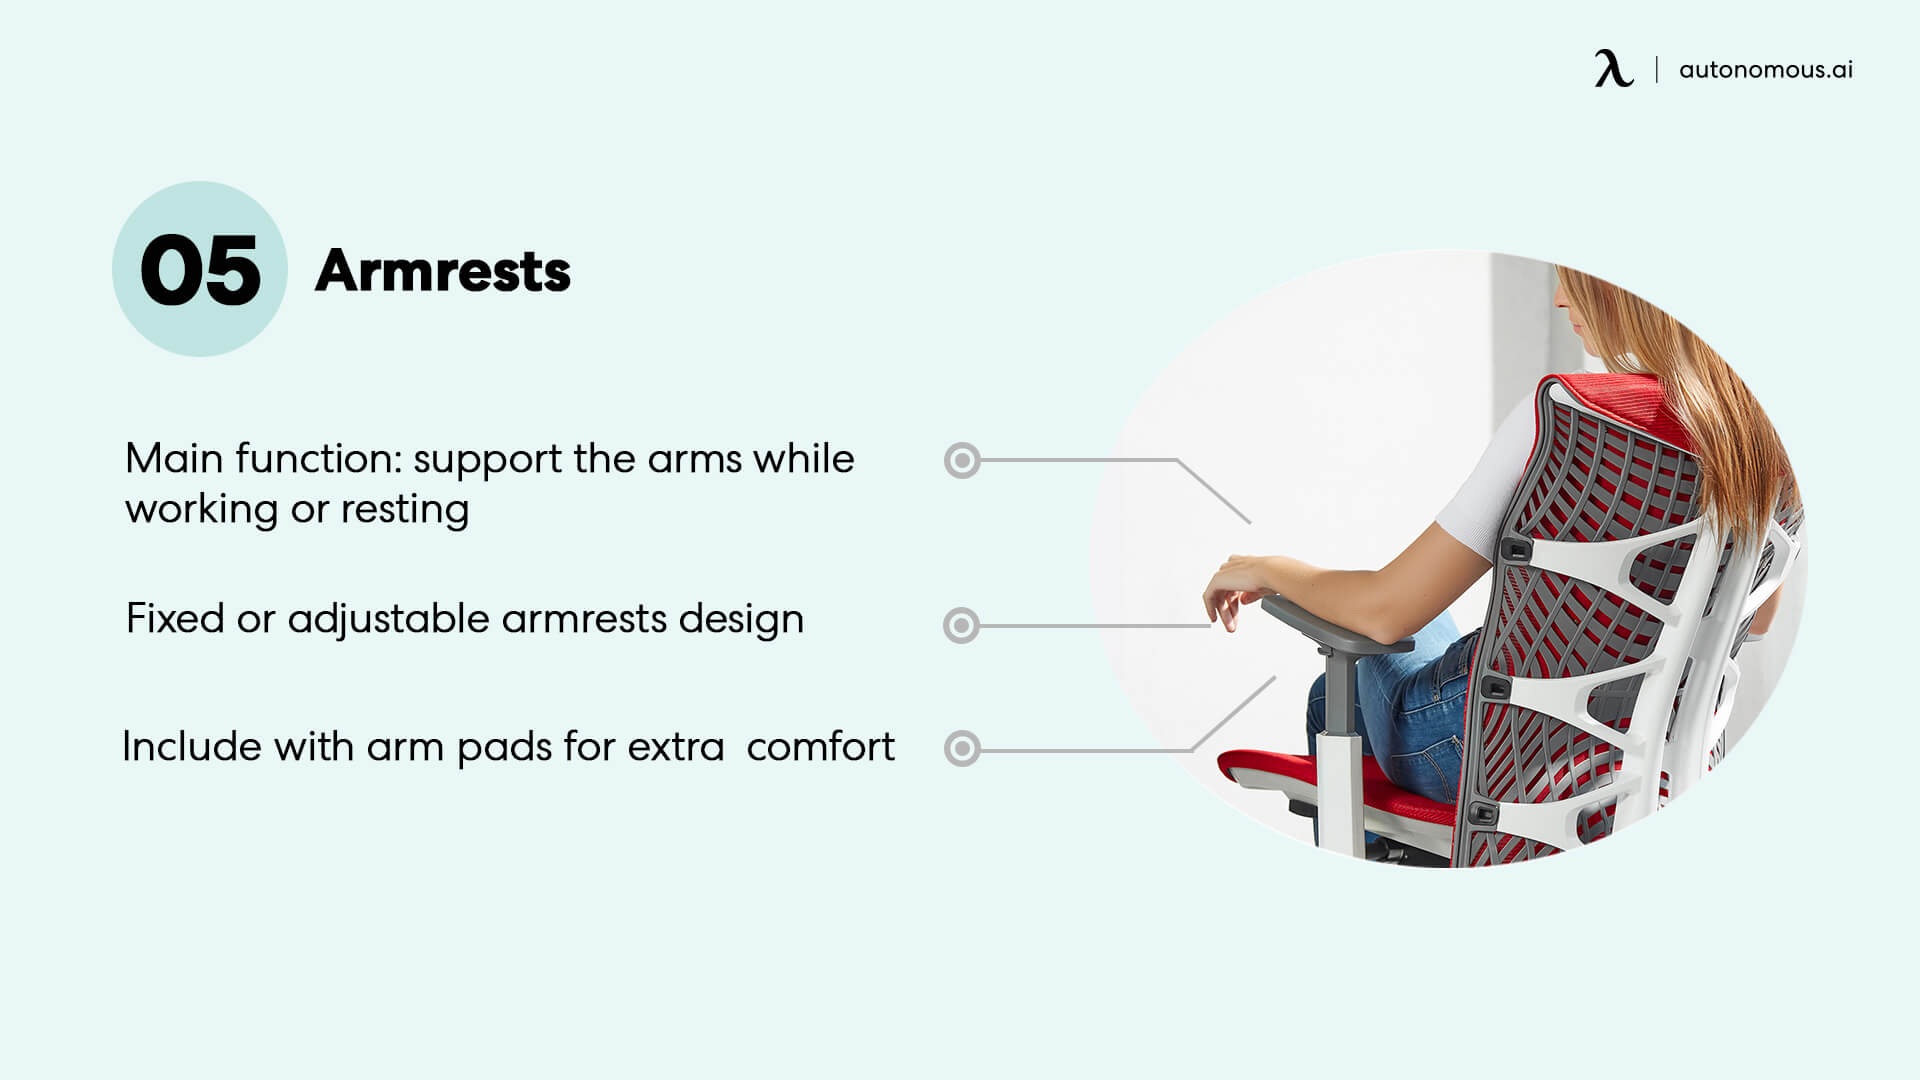 Ergonomic chairs usually have armrest